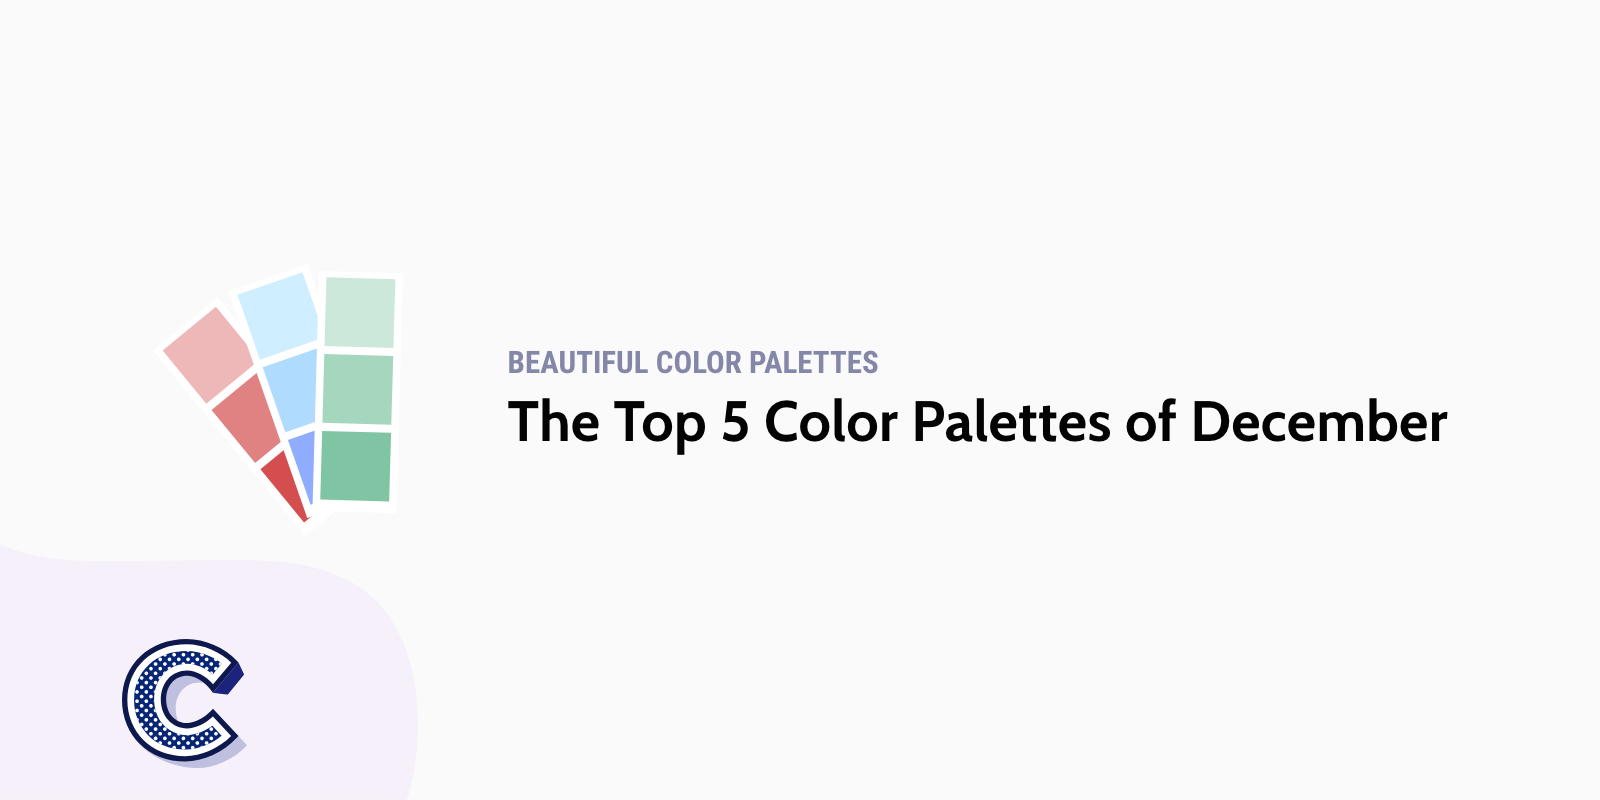 The Top 5 Color Palettes of December